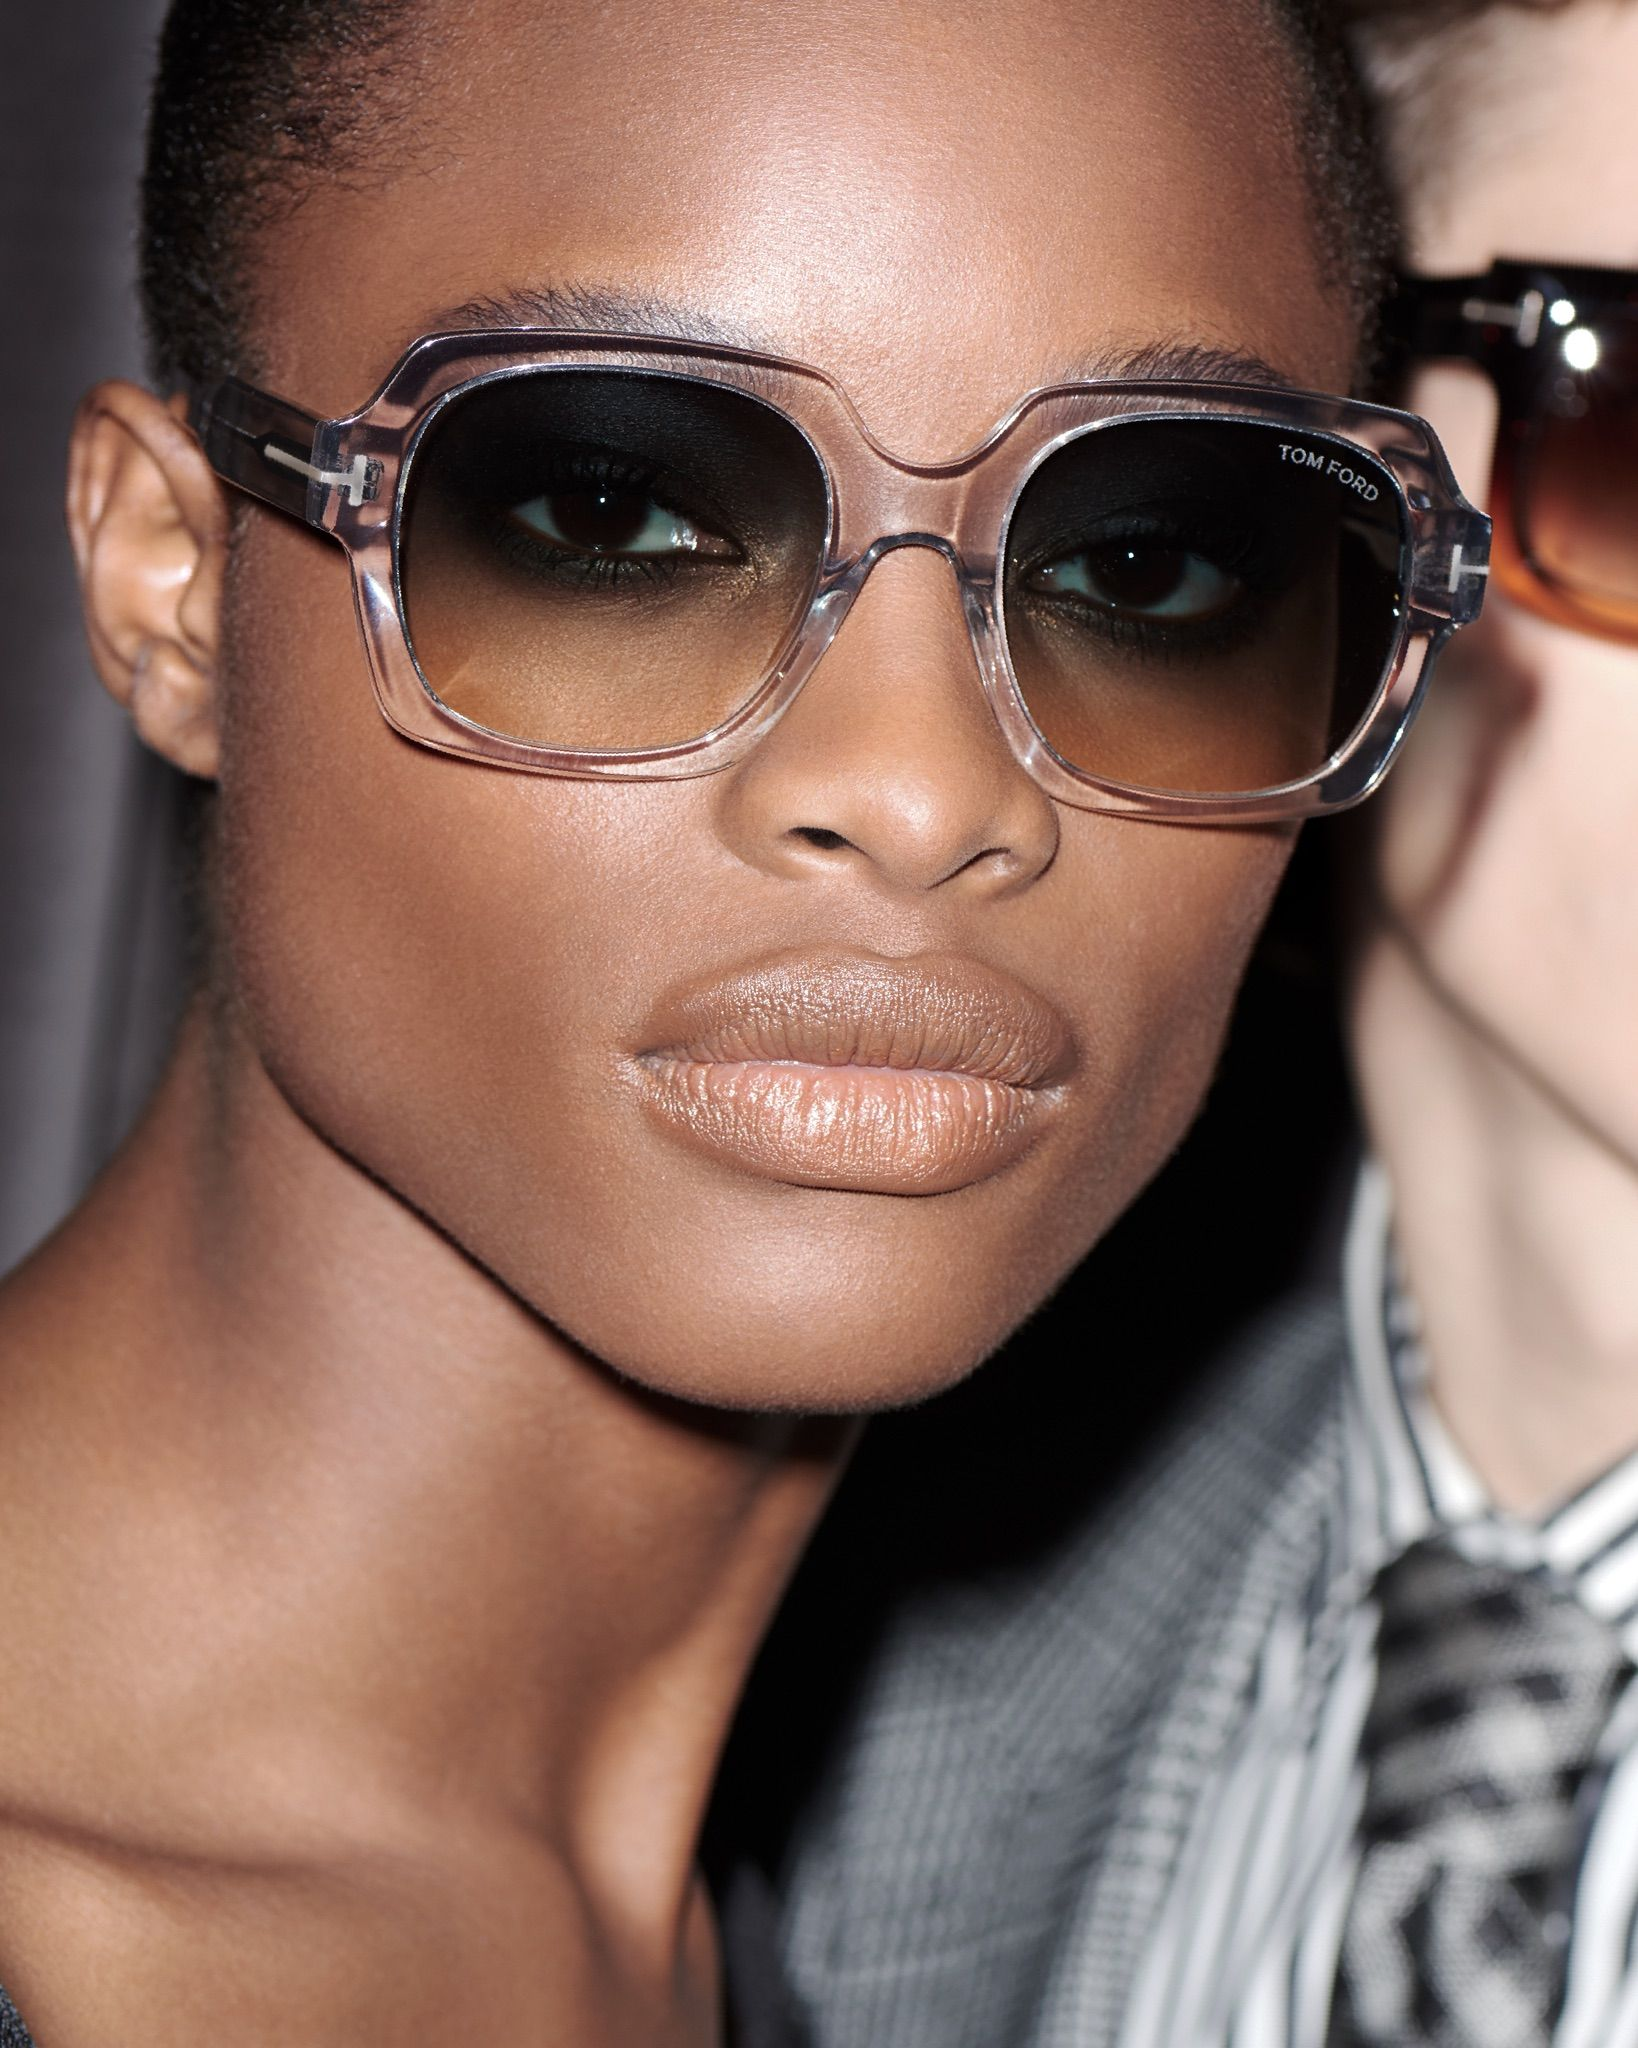 6bddb9e5986 The new Autumn Sunglasses.  TOMFORD  TFEYEWEAR